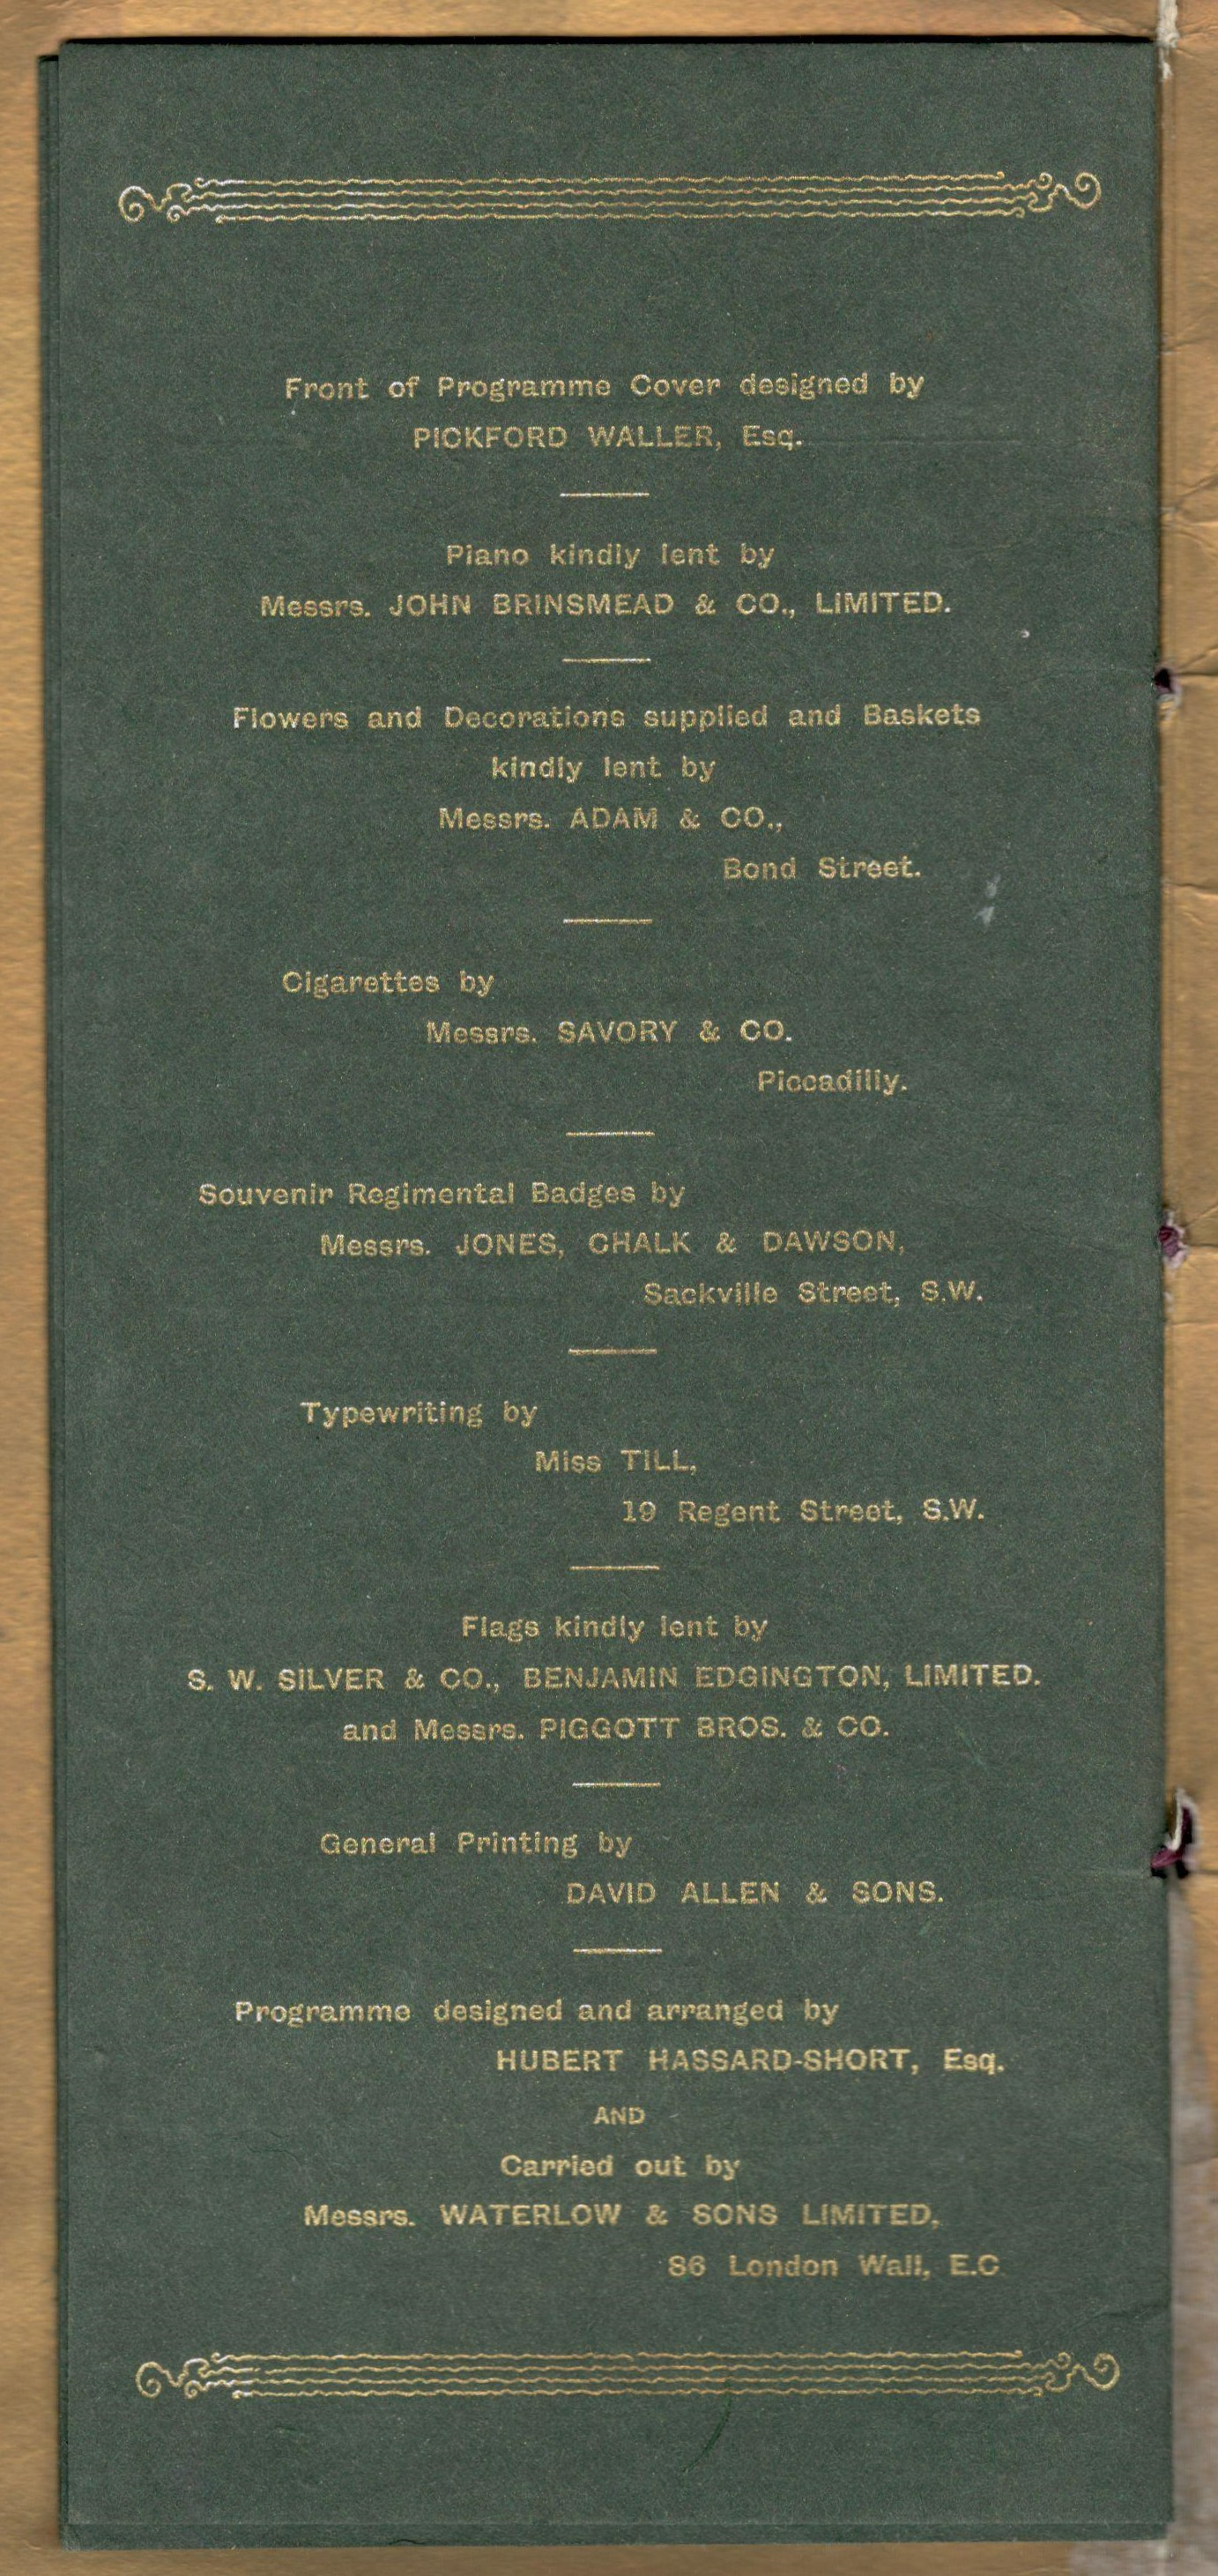 Lot 25 - PROGRAMME FOR GRAND MATINEE ORGANISED BY HUBERT HASSARD - SHORT ESQ. IN AID OF THE SICK & WOUNDED OF